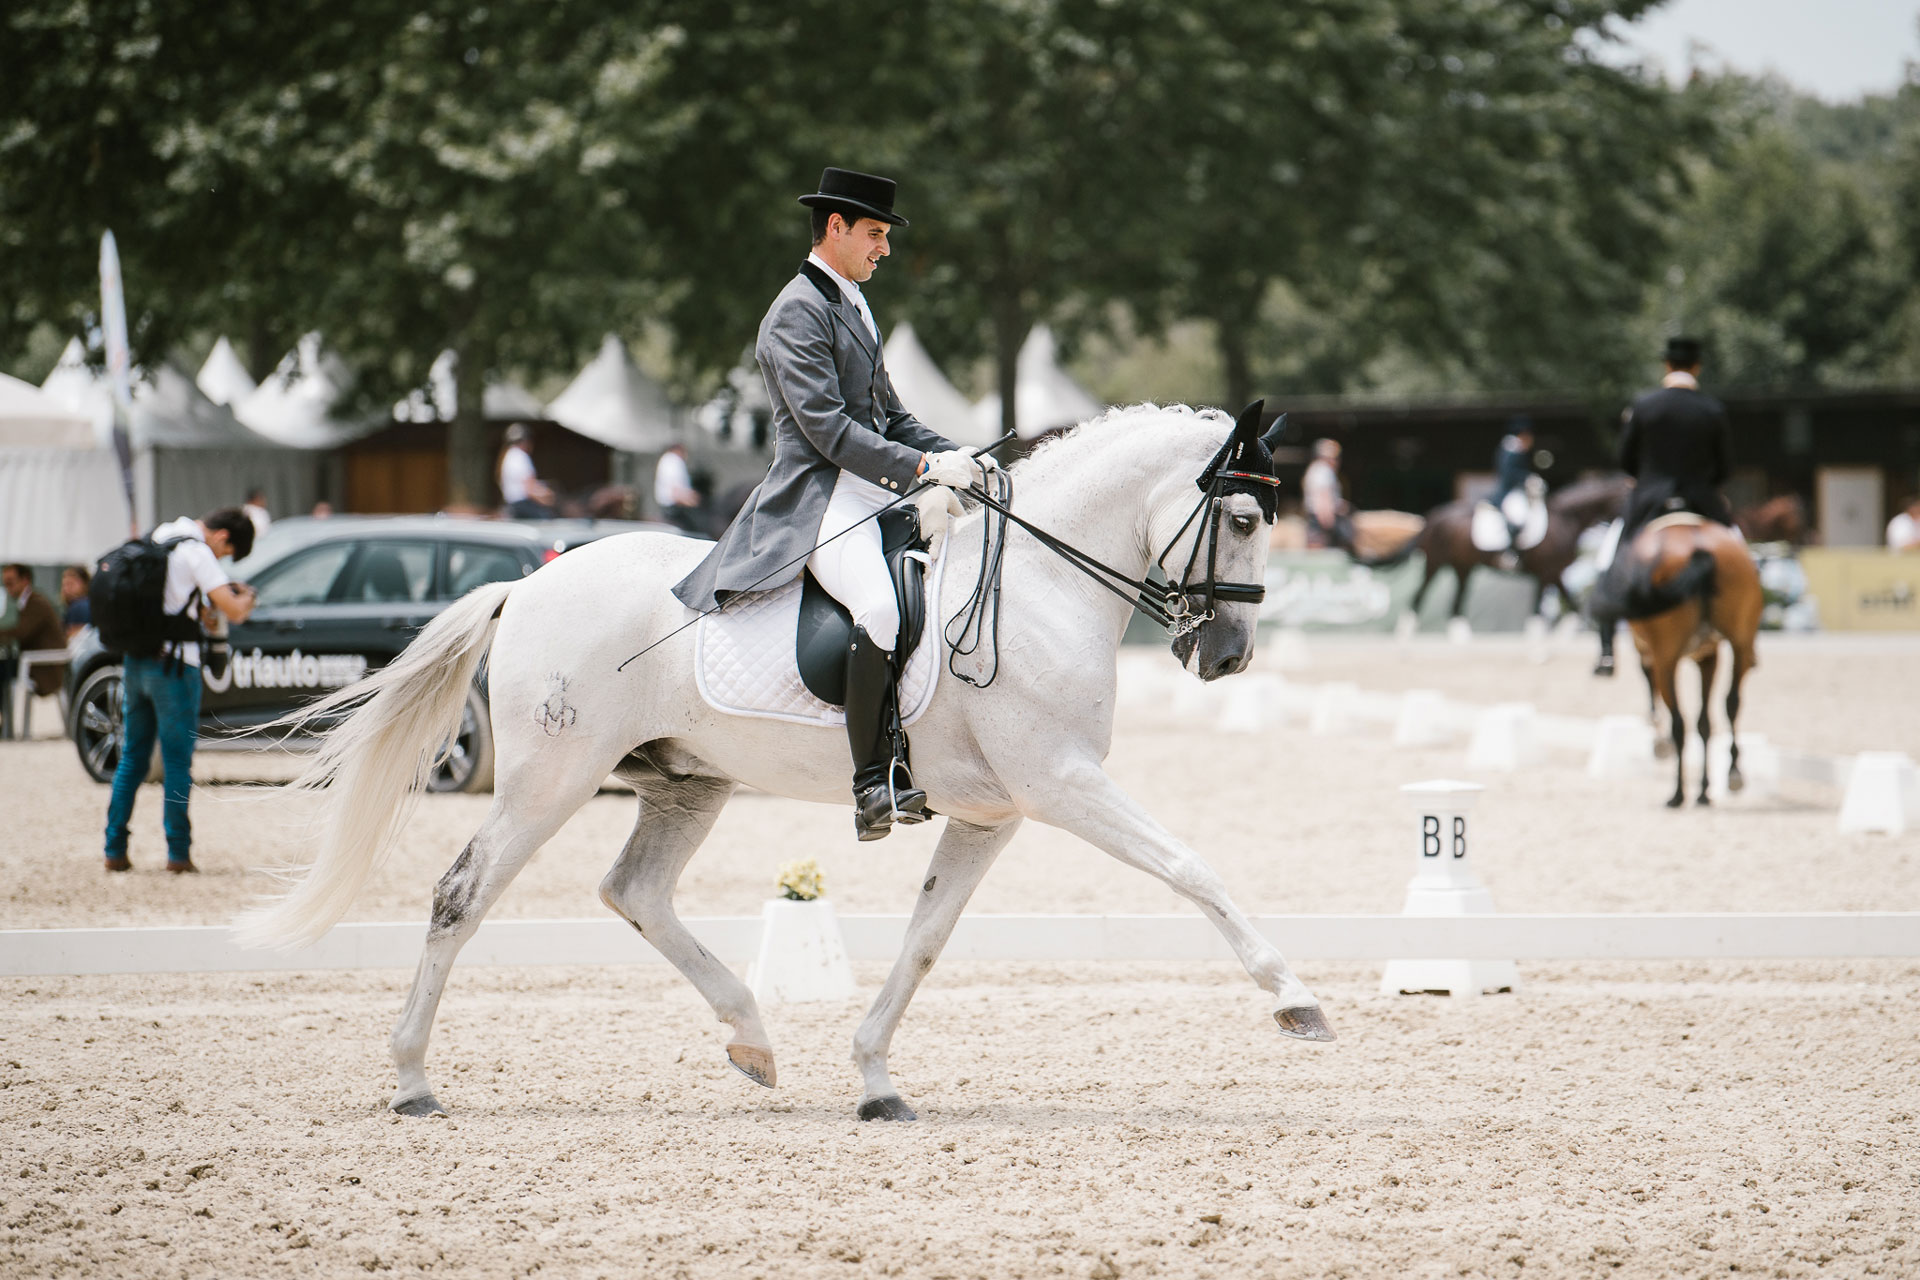 Piro free gelding competing in GP